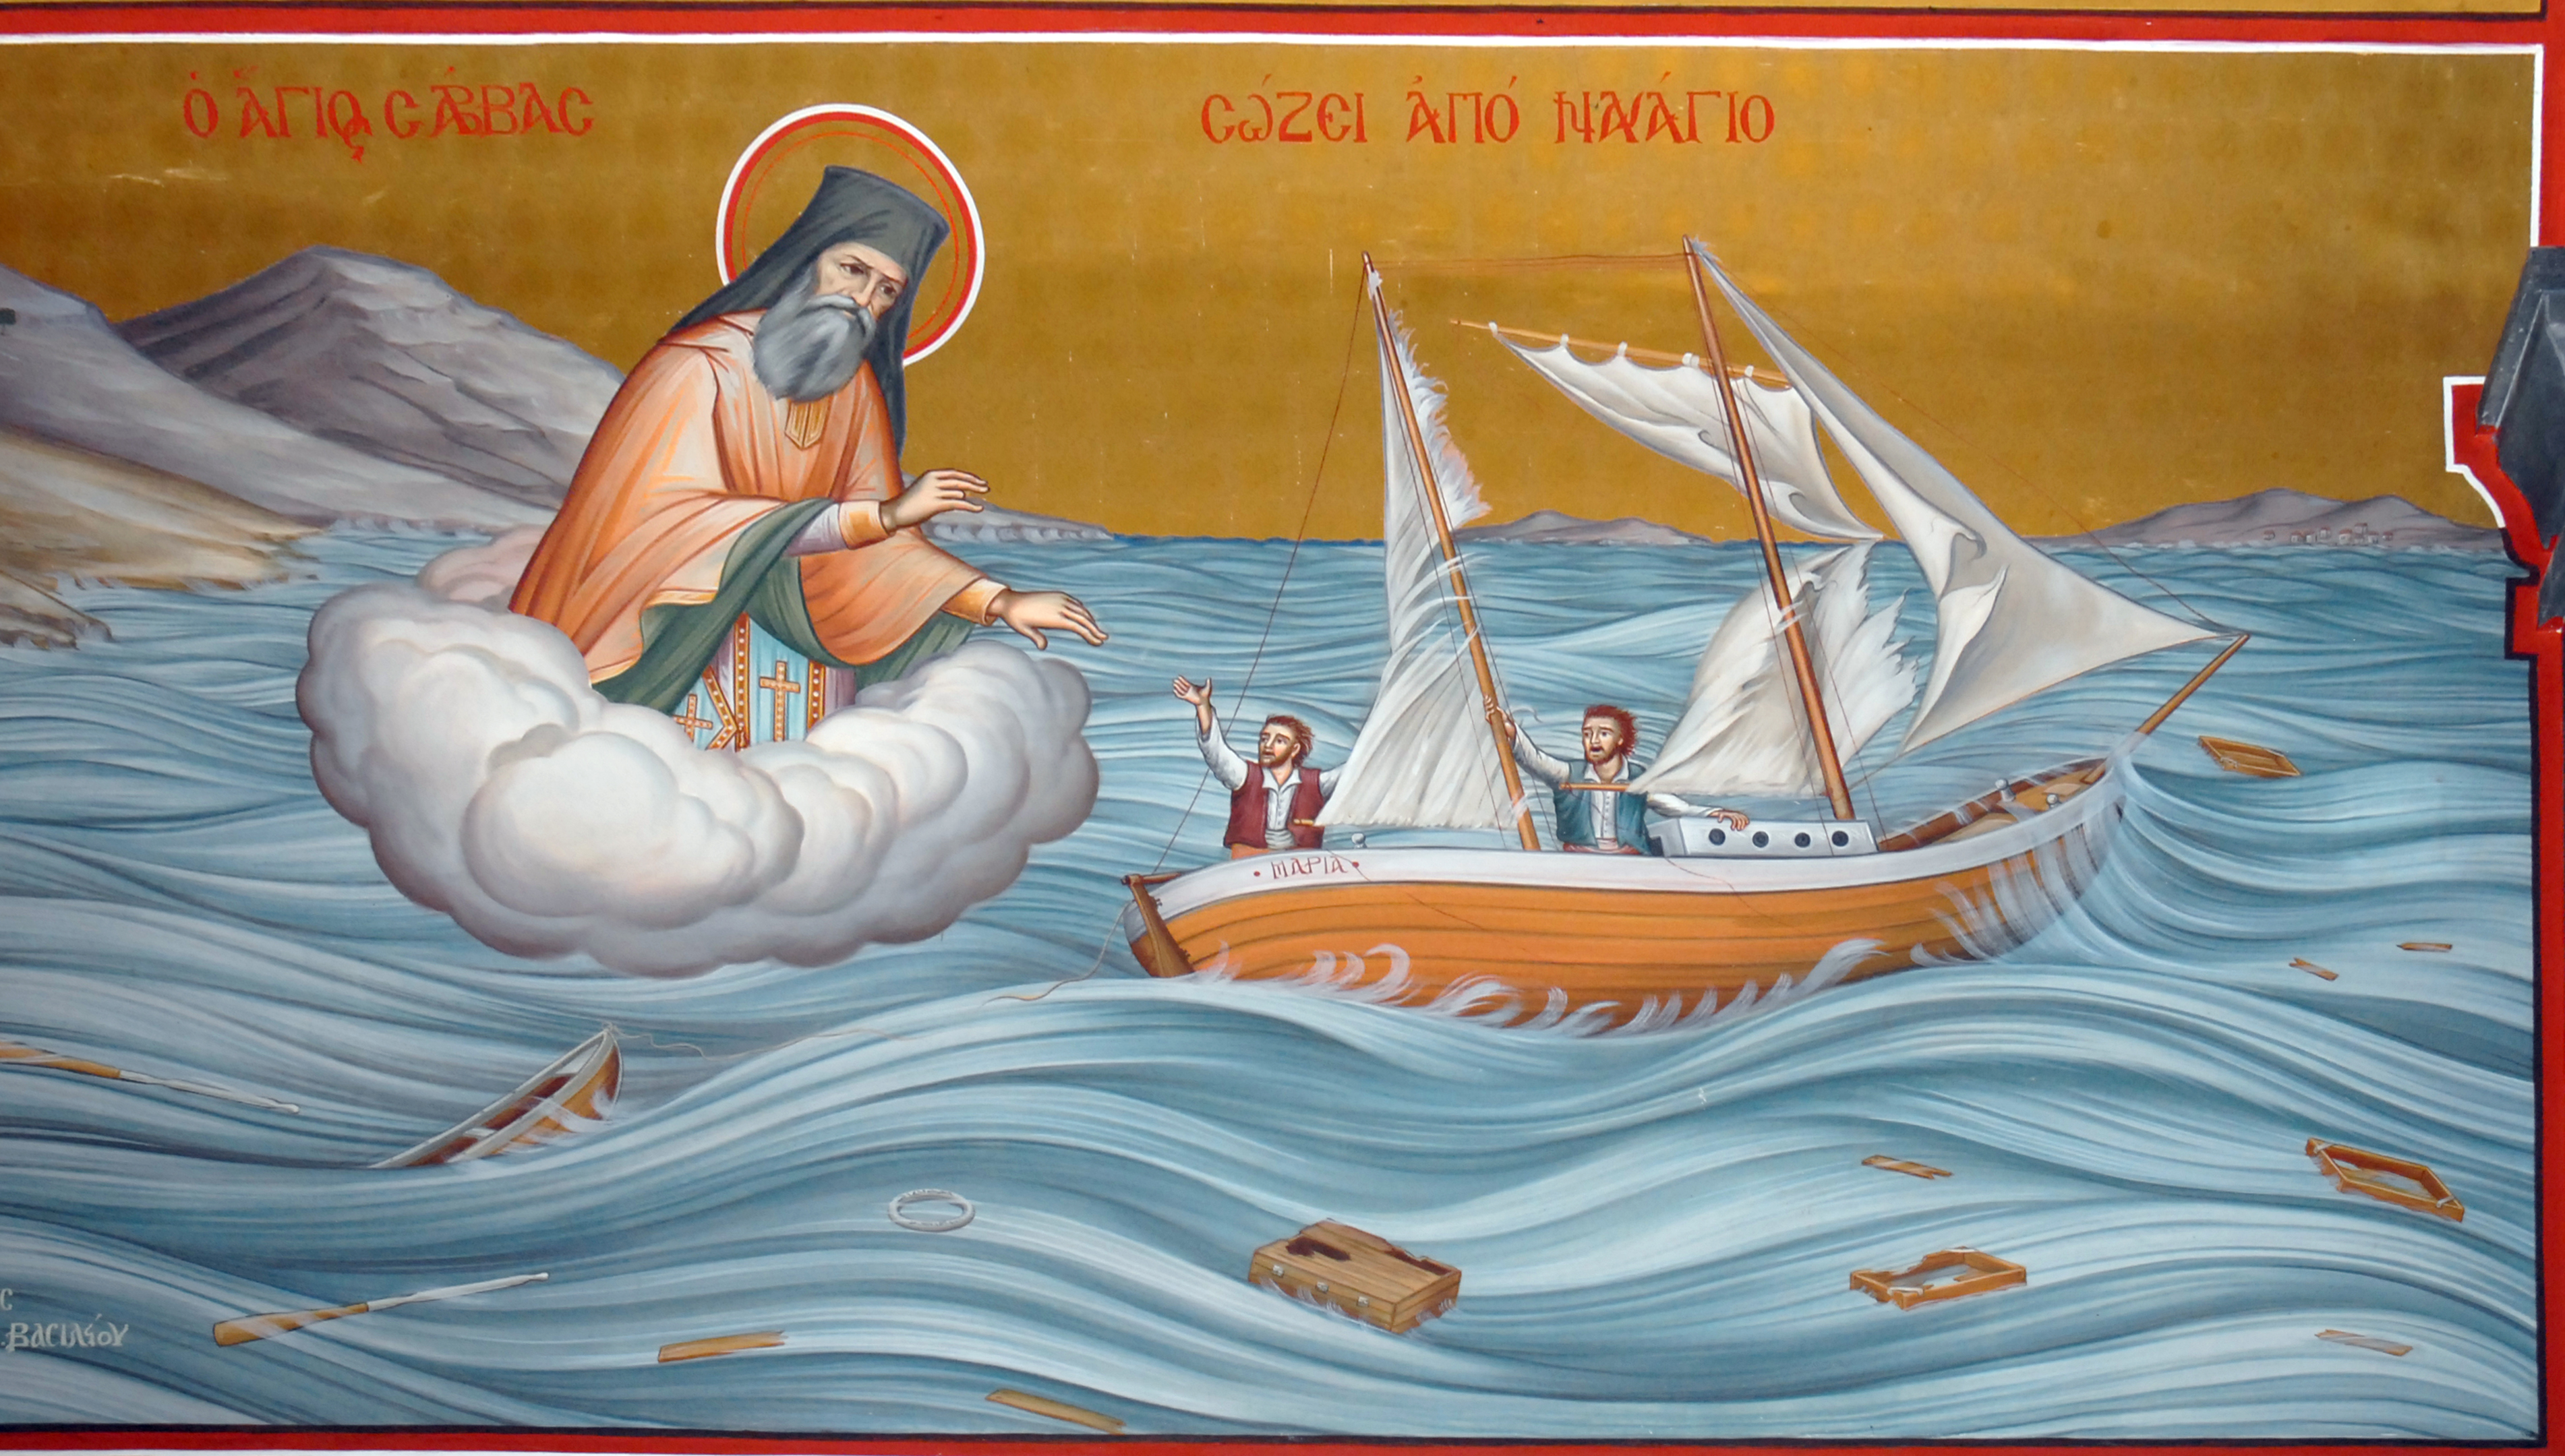 St Savvas of Kalymnos miracle at sea